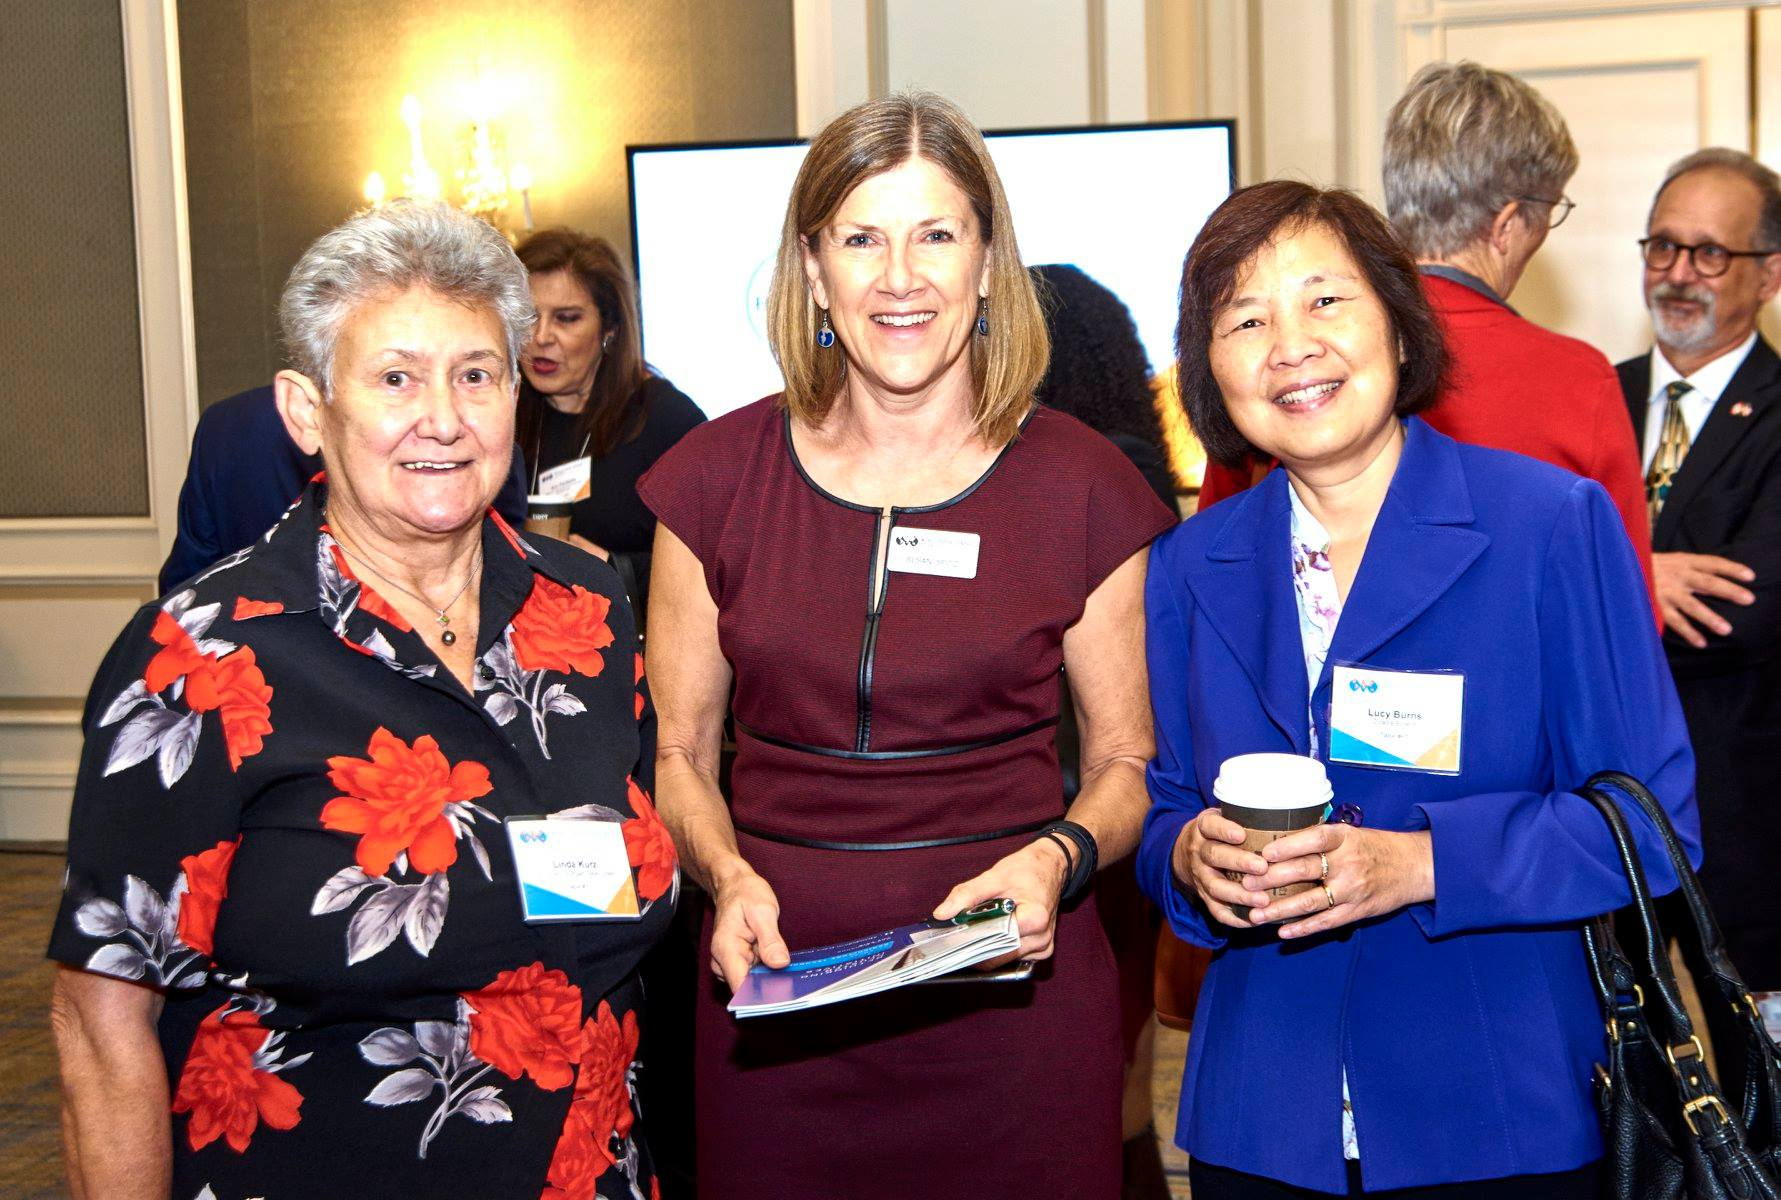 Left to right: Linda Kurz - SLSSC Board of directors, Susan Spitz - WOrld Trade Center St. Louis, lucy burns - Cicadea biospace, llc.